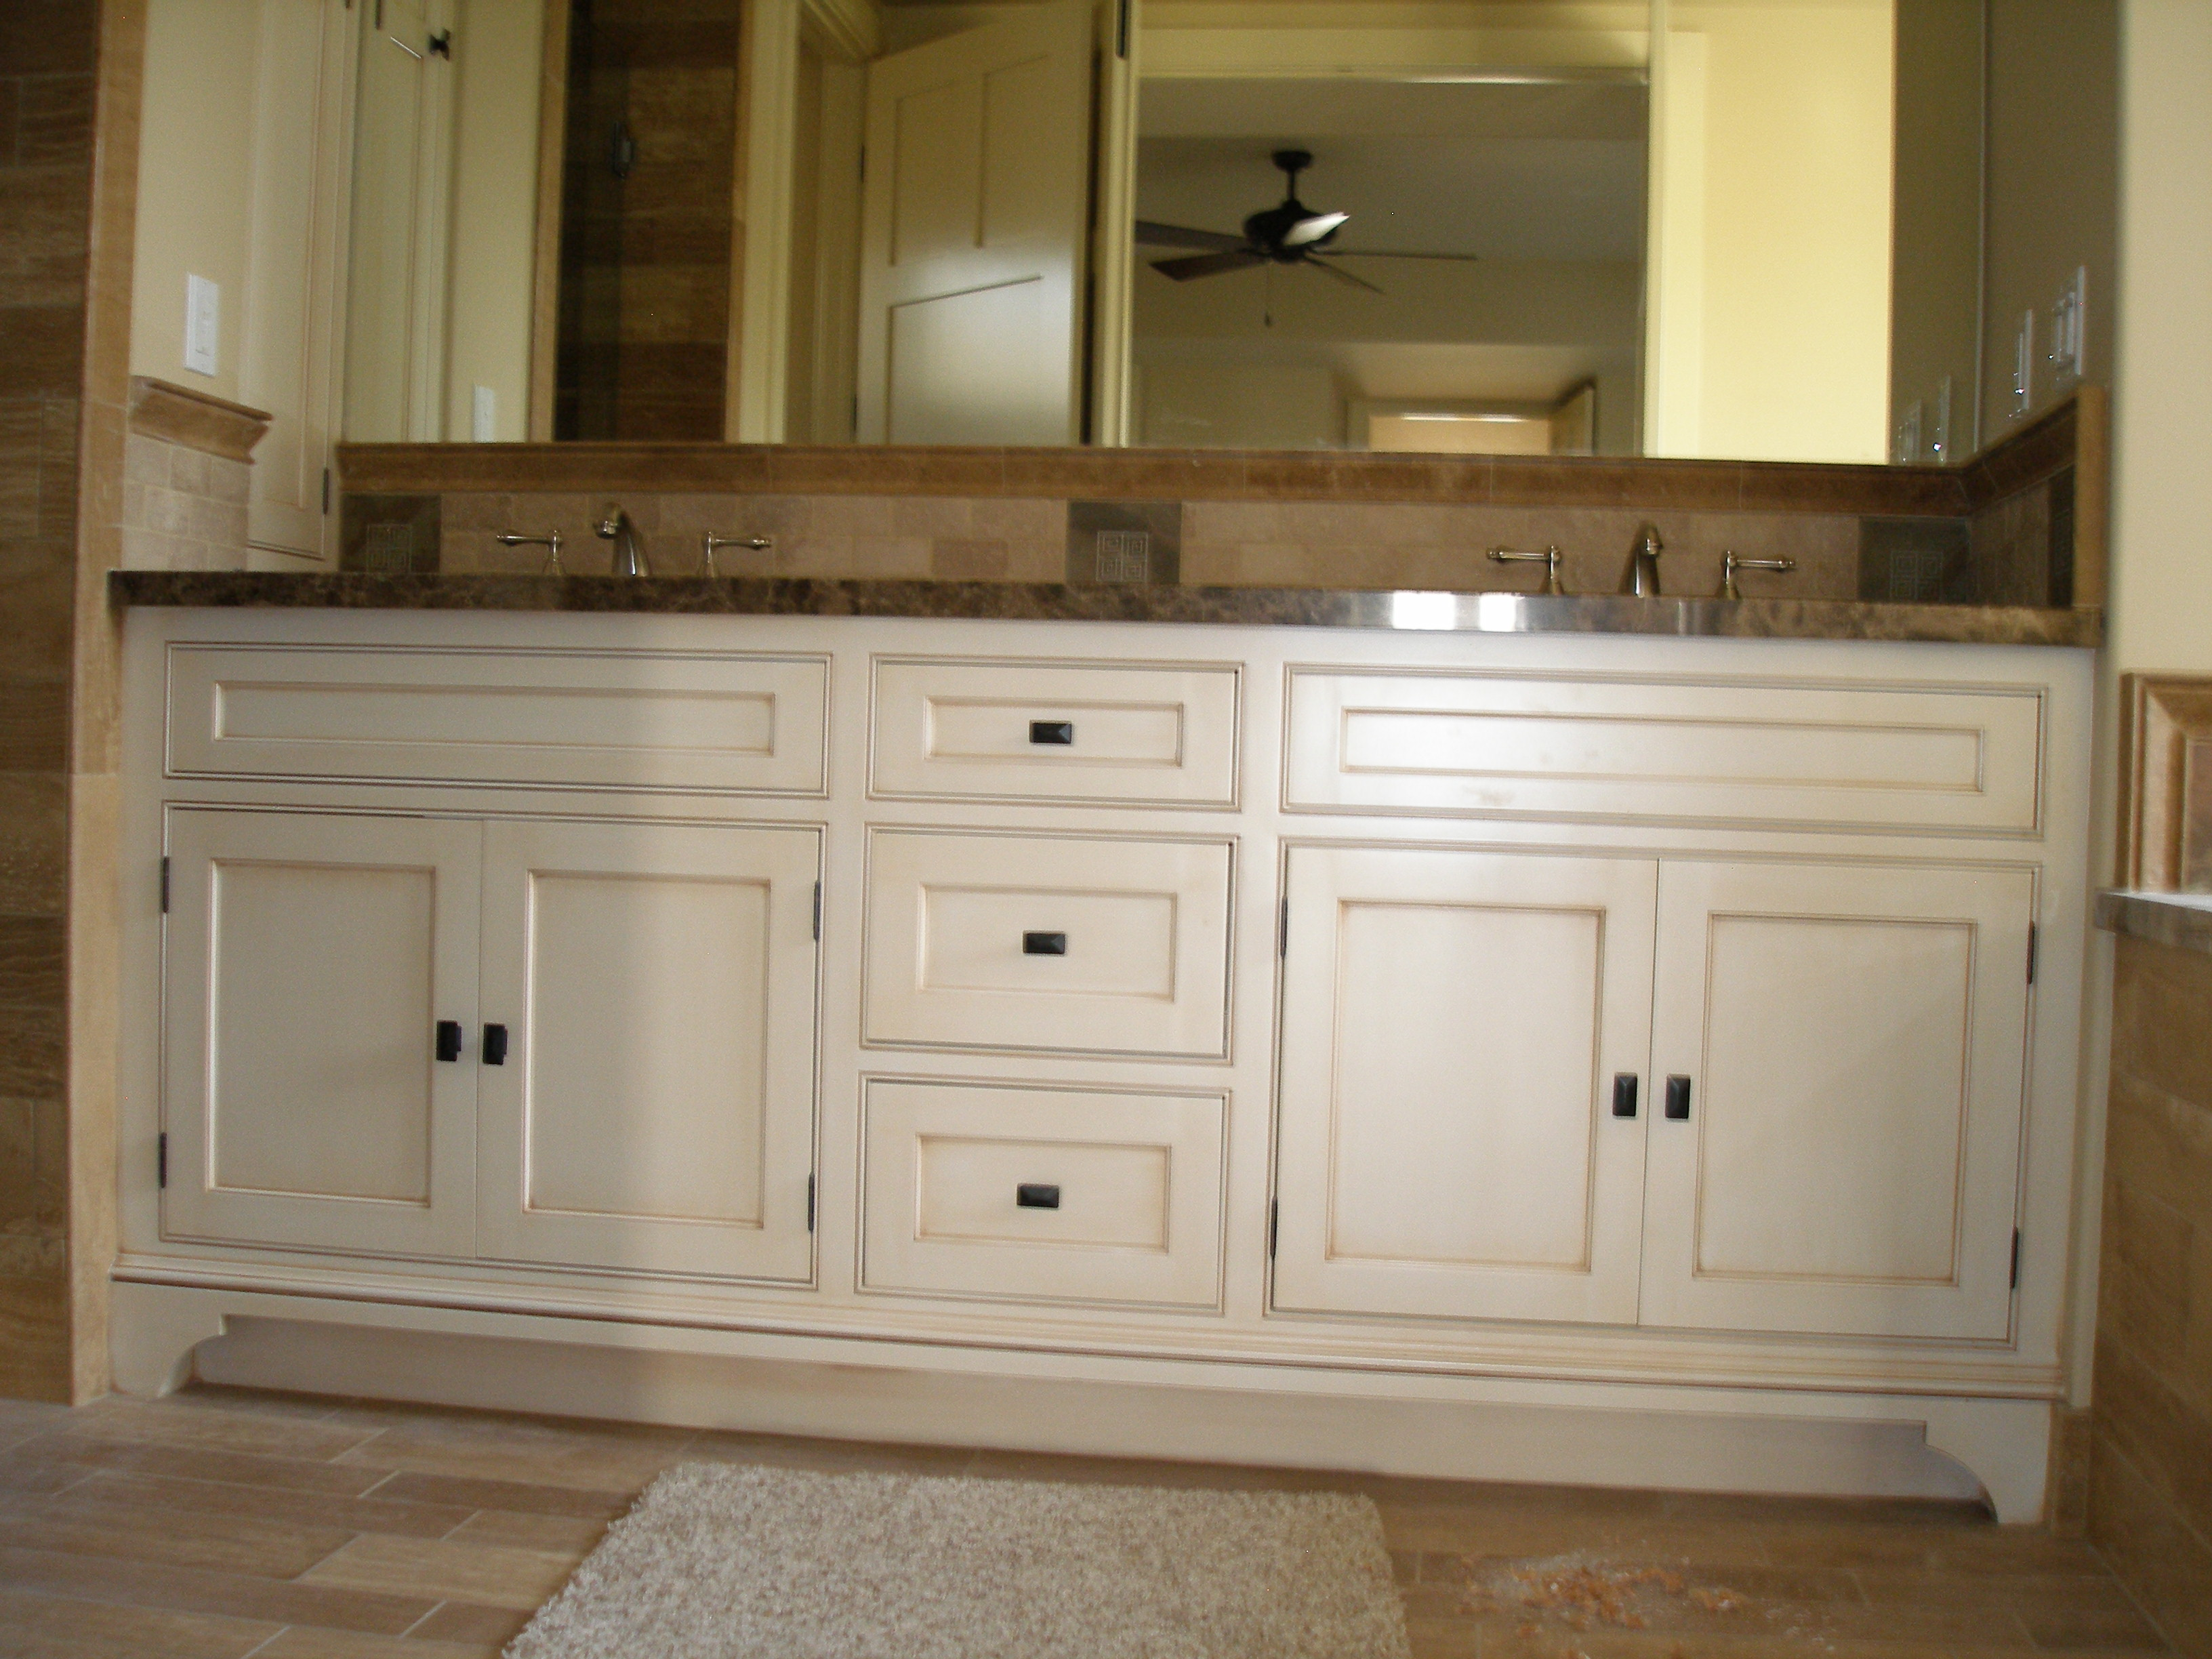 Face Frame Cabinets